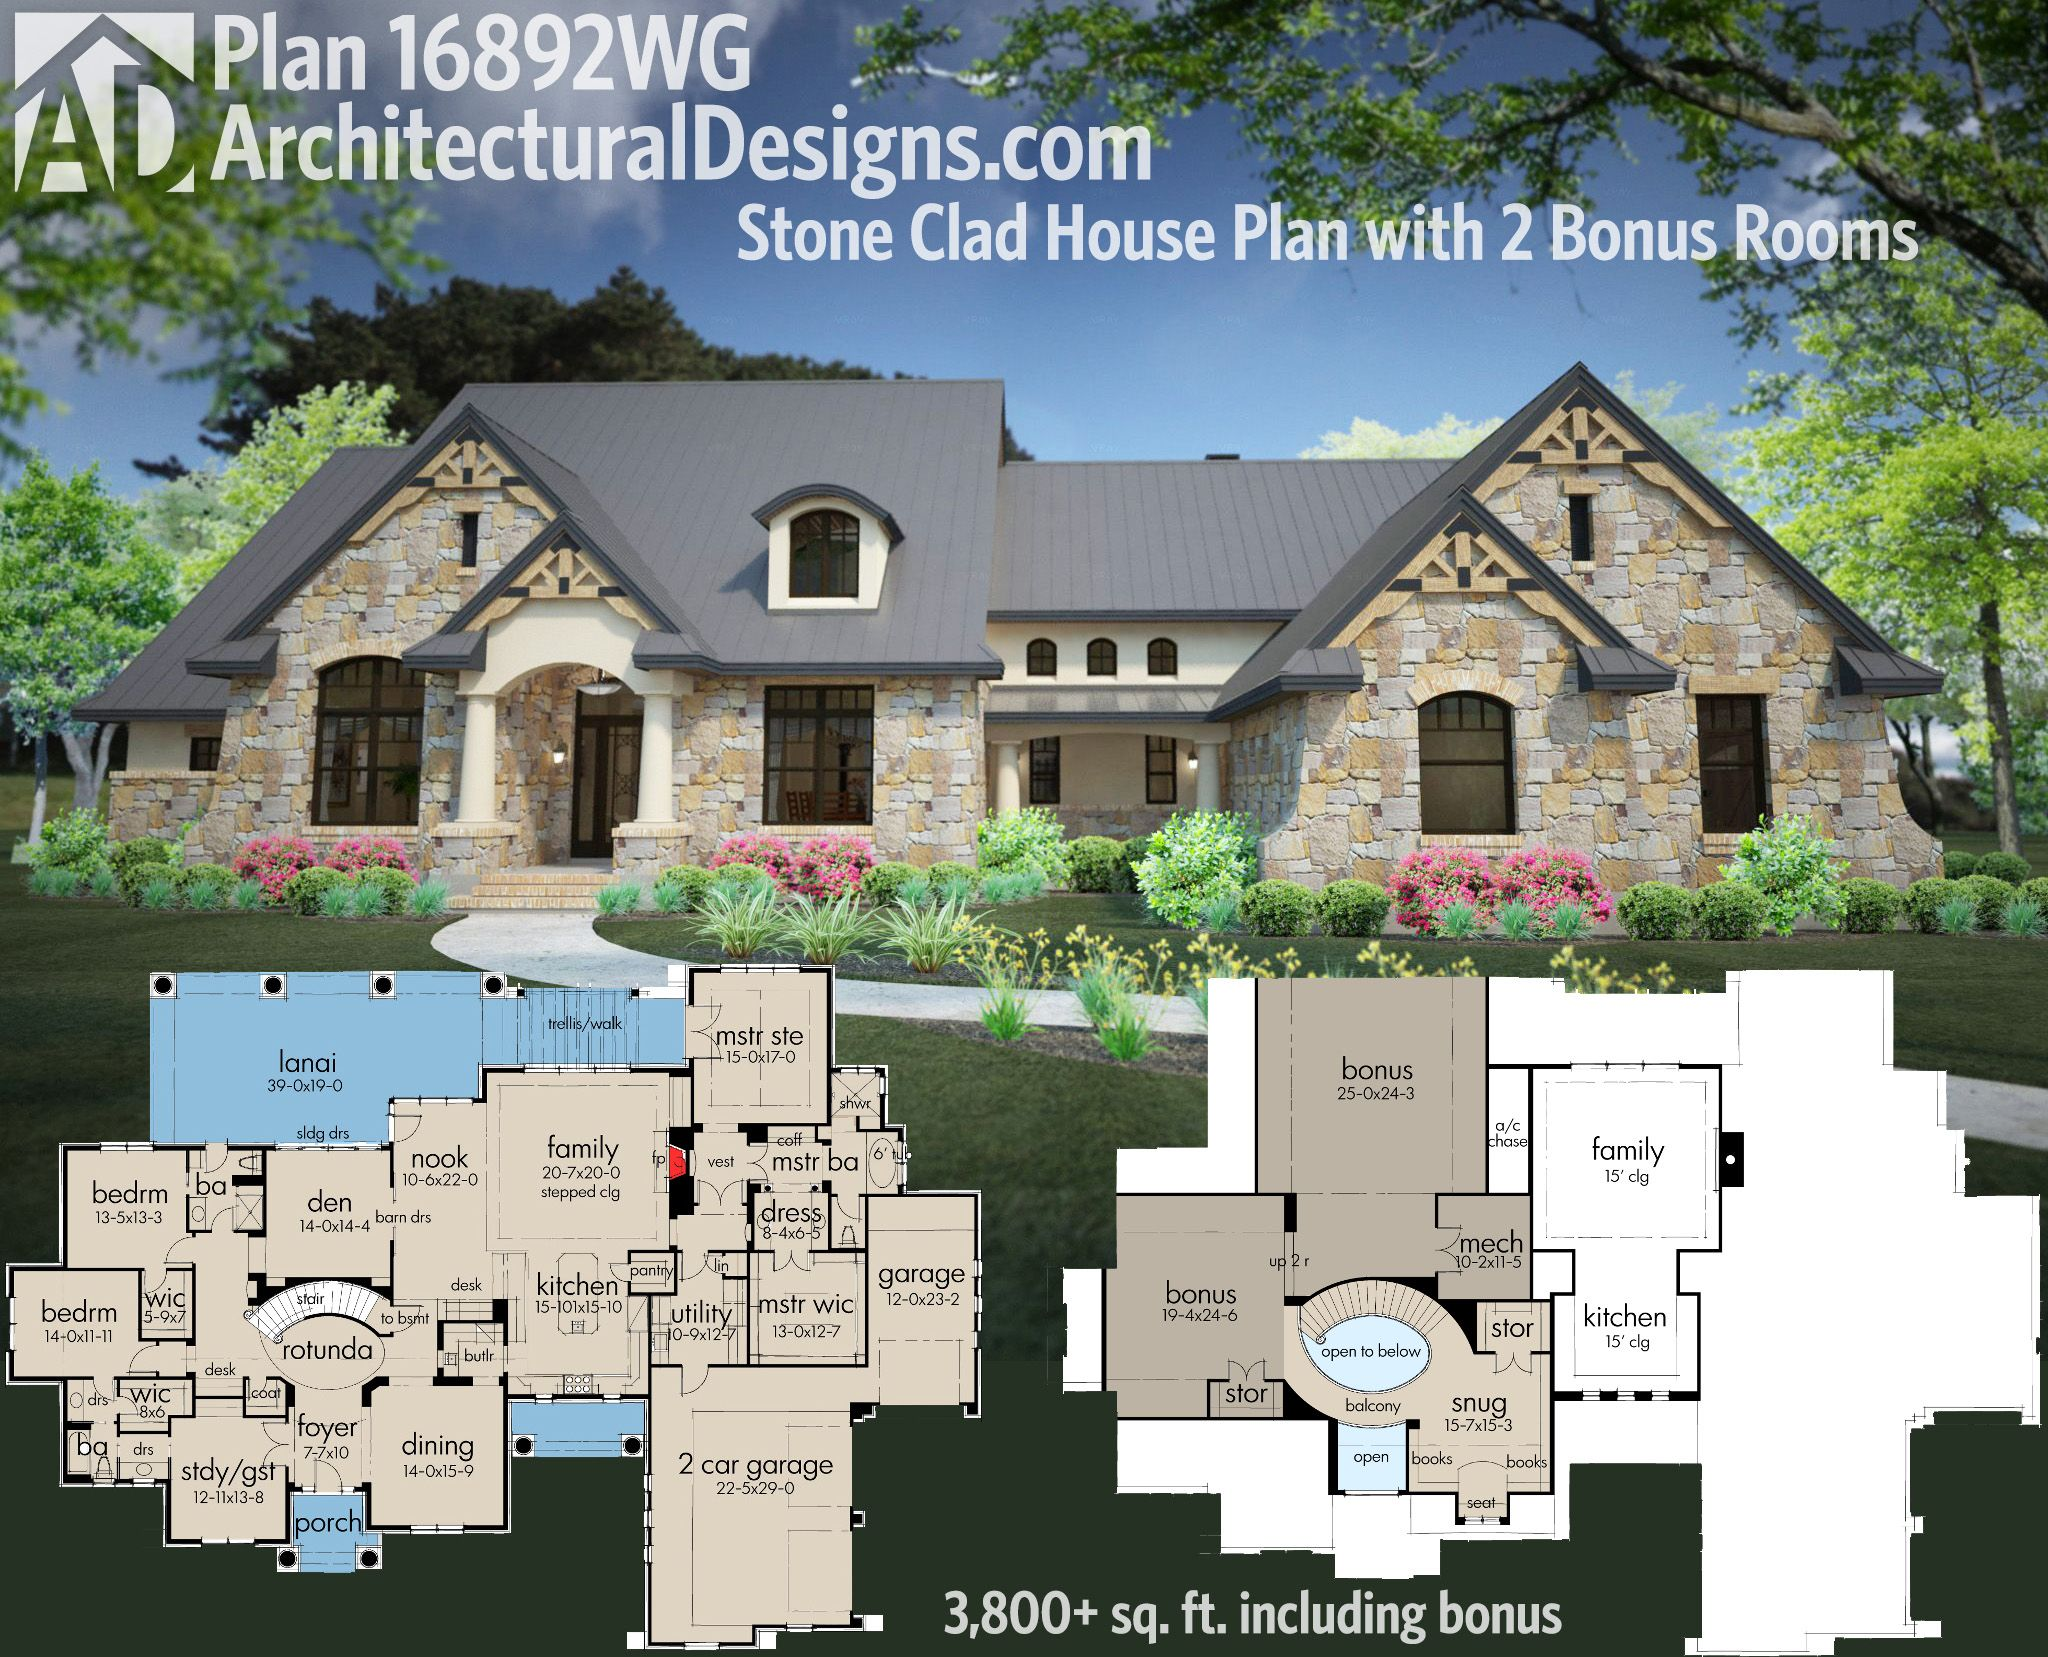 Plan 16892wg stone clad house plan with 2 bonus rooms 3 for Three bedroom house plans with bonus room